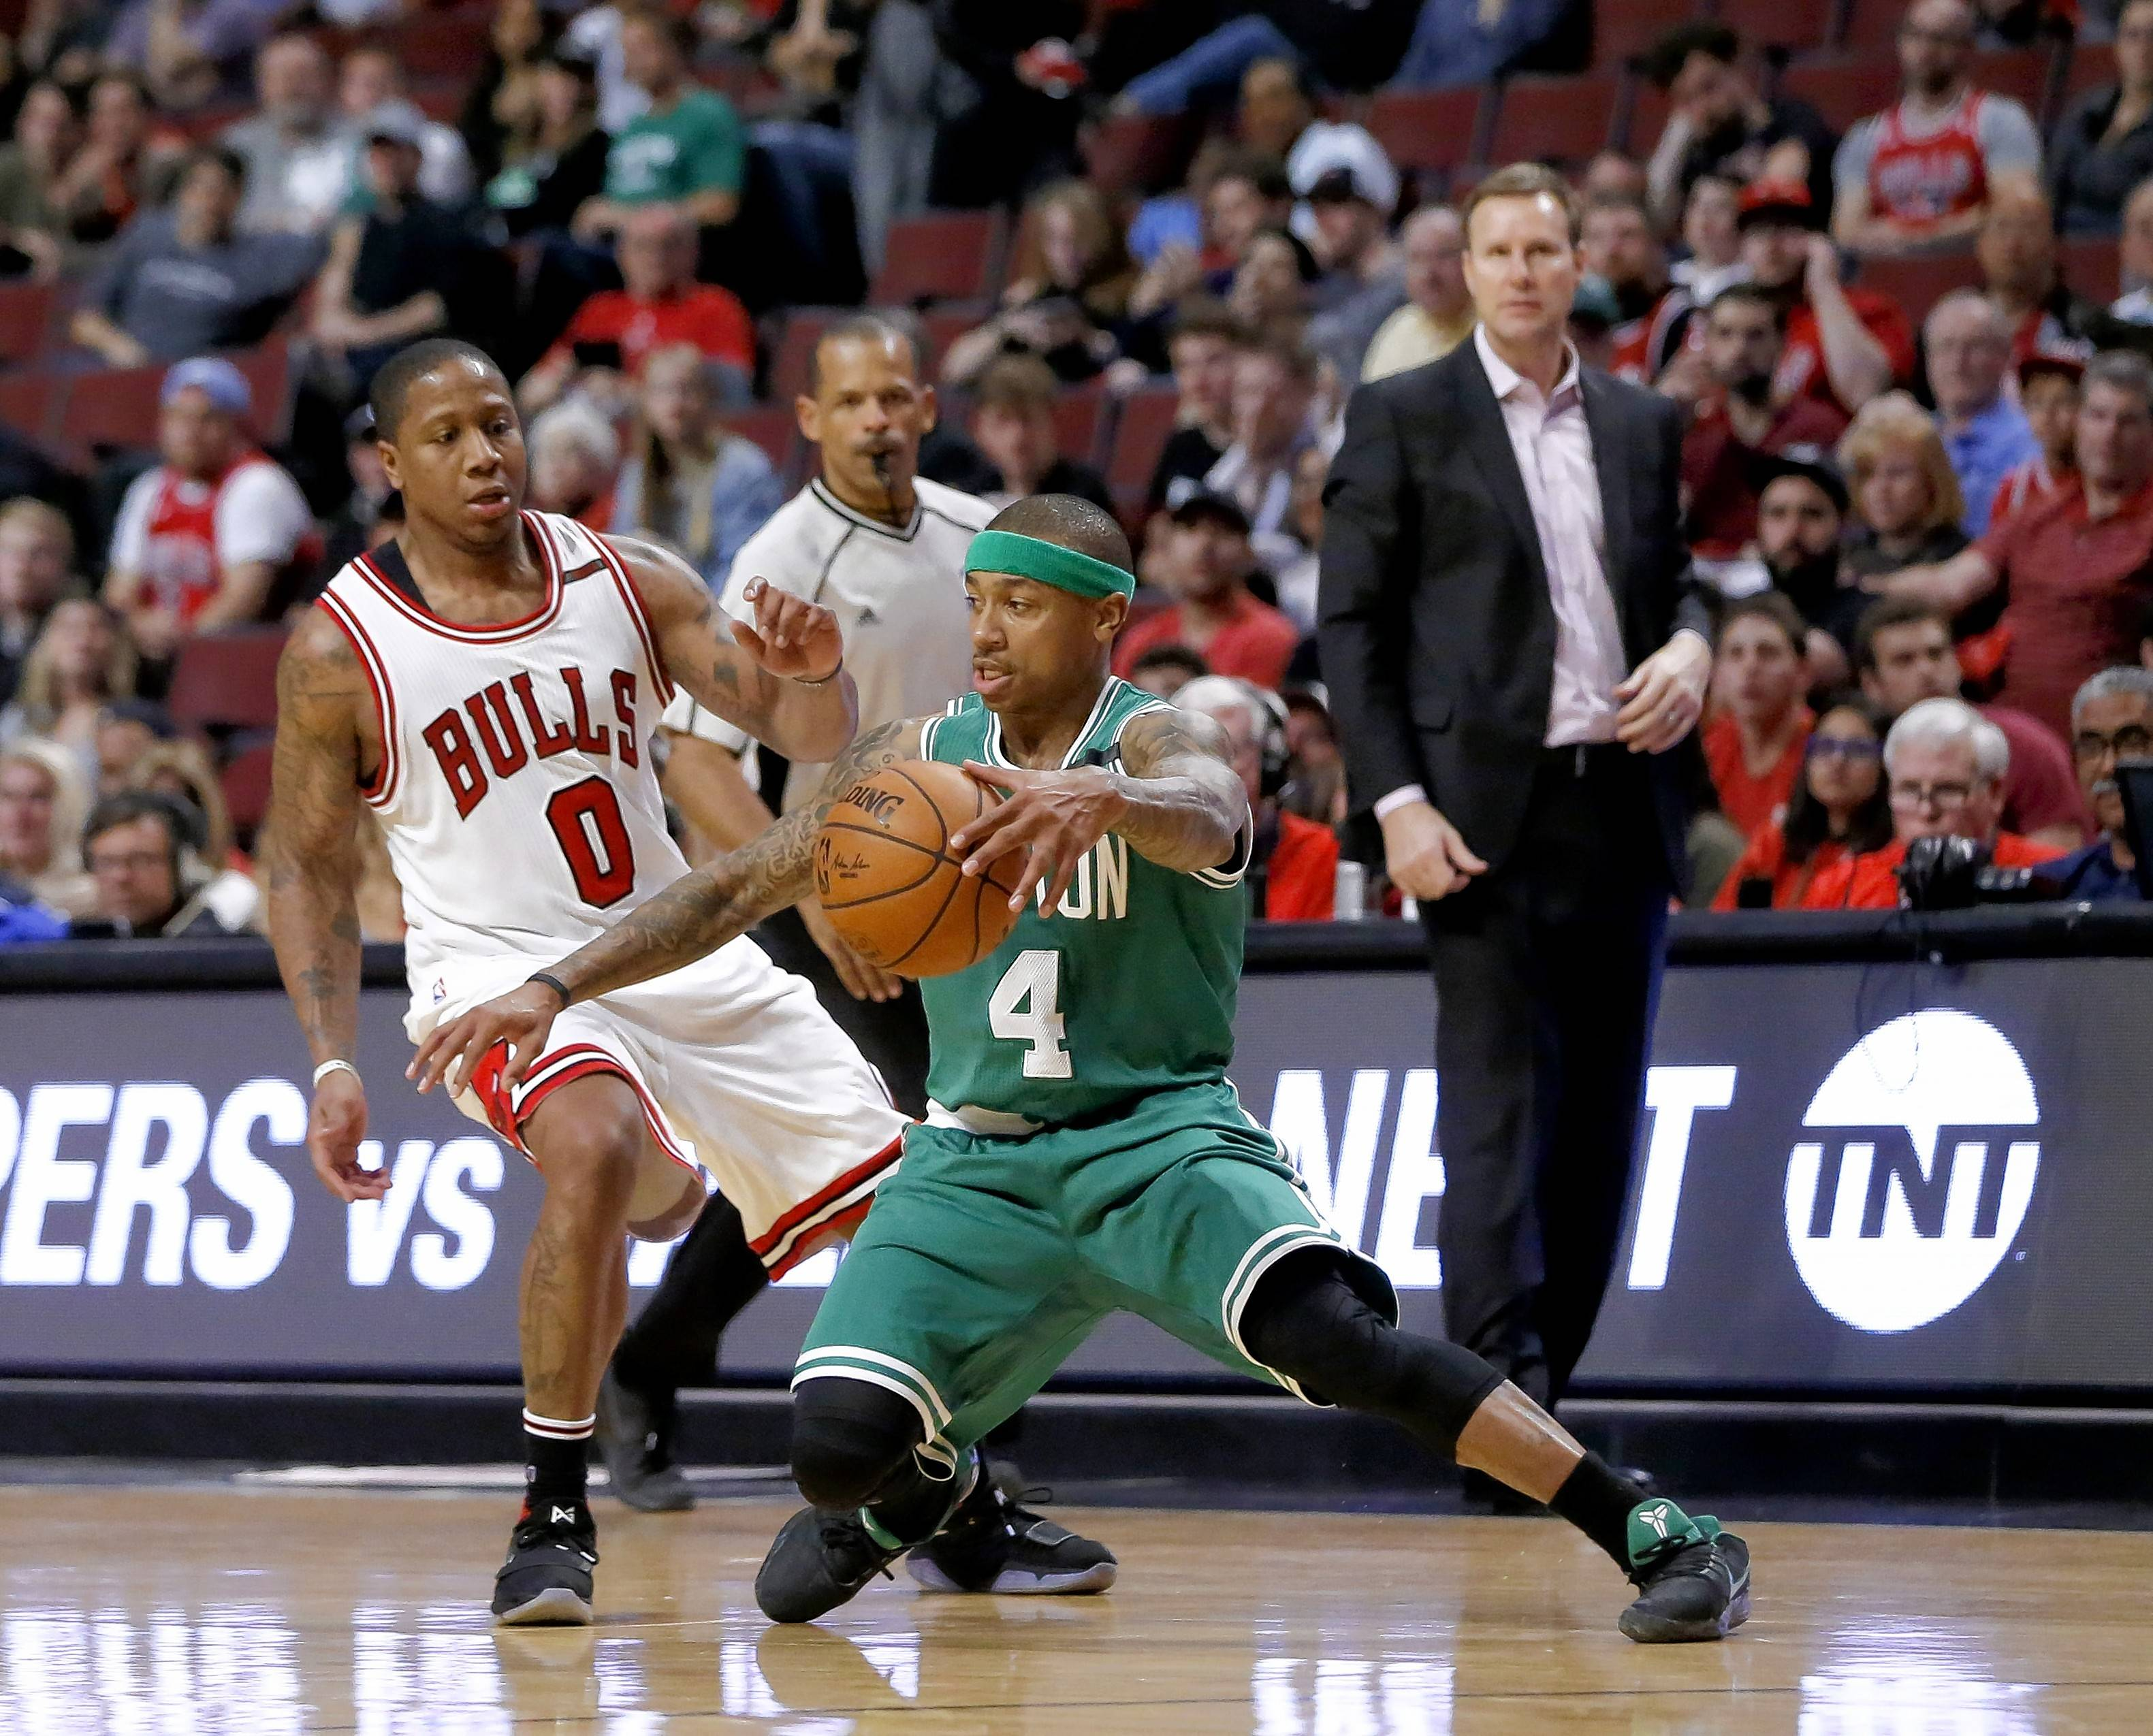 Bulls' Canaan comes from nowhere to play major role in Game 4